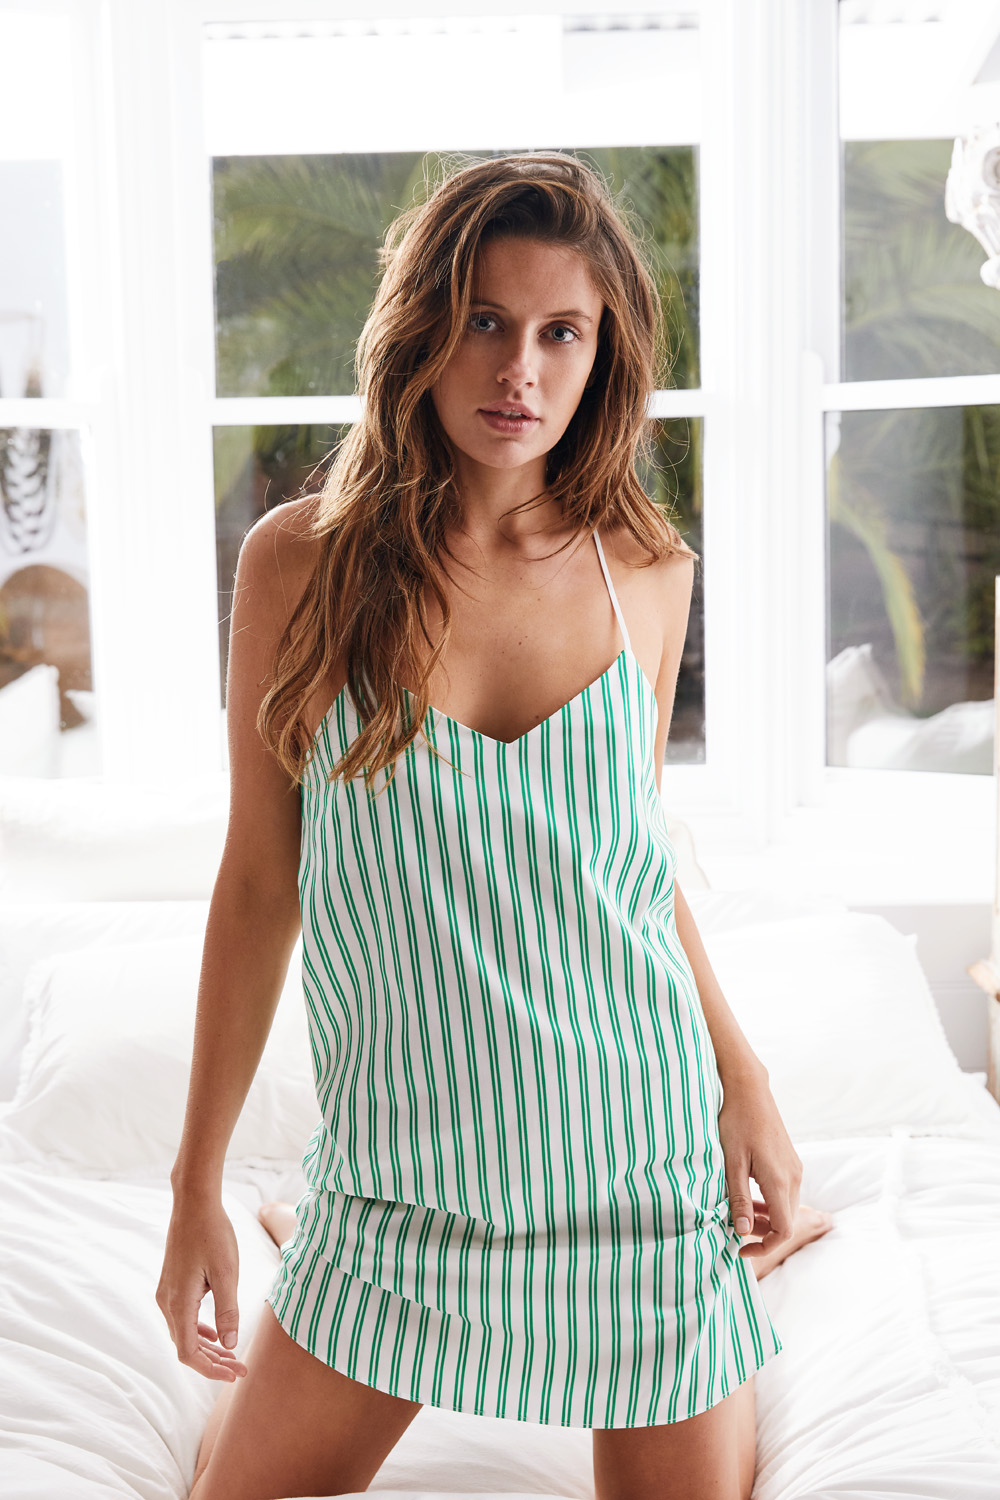 The Willow Camisole Slip Dress - Front view